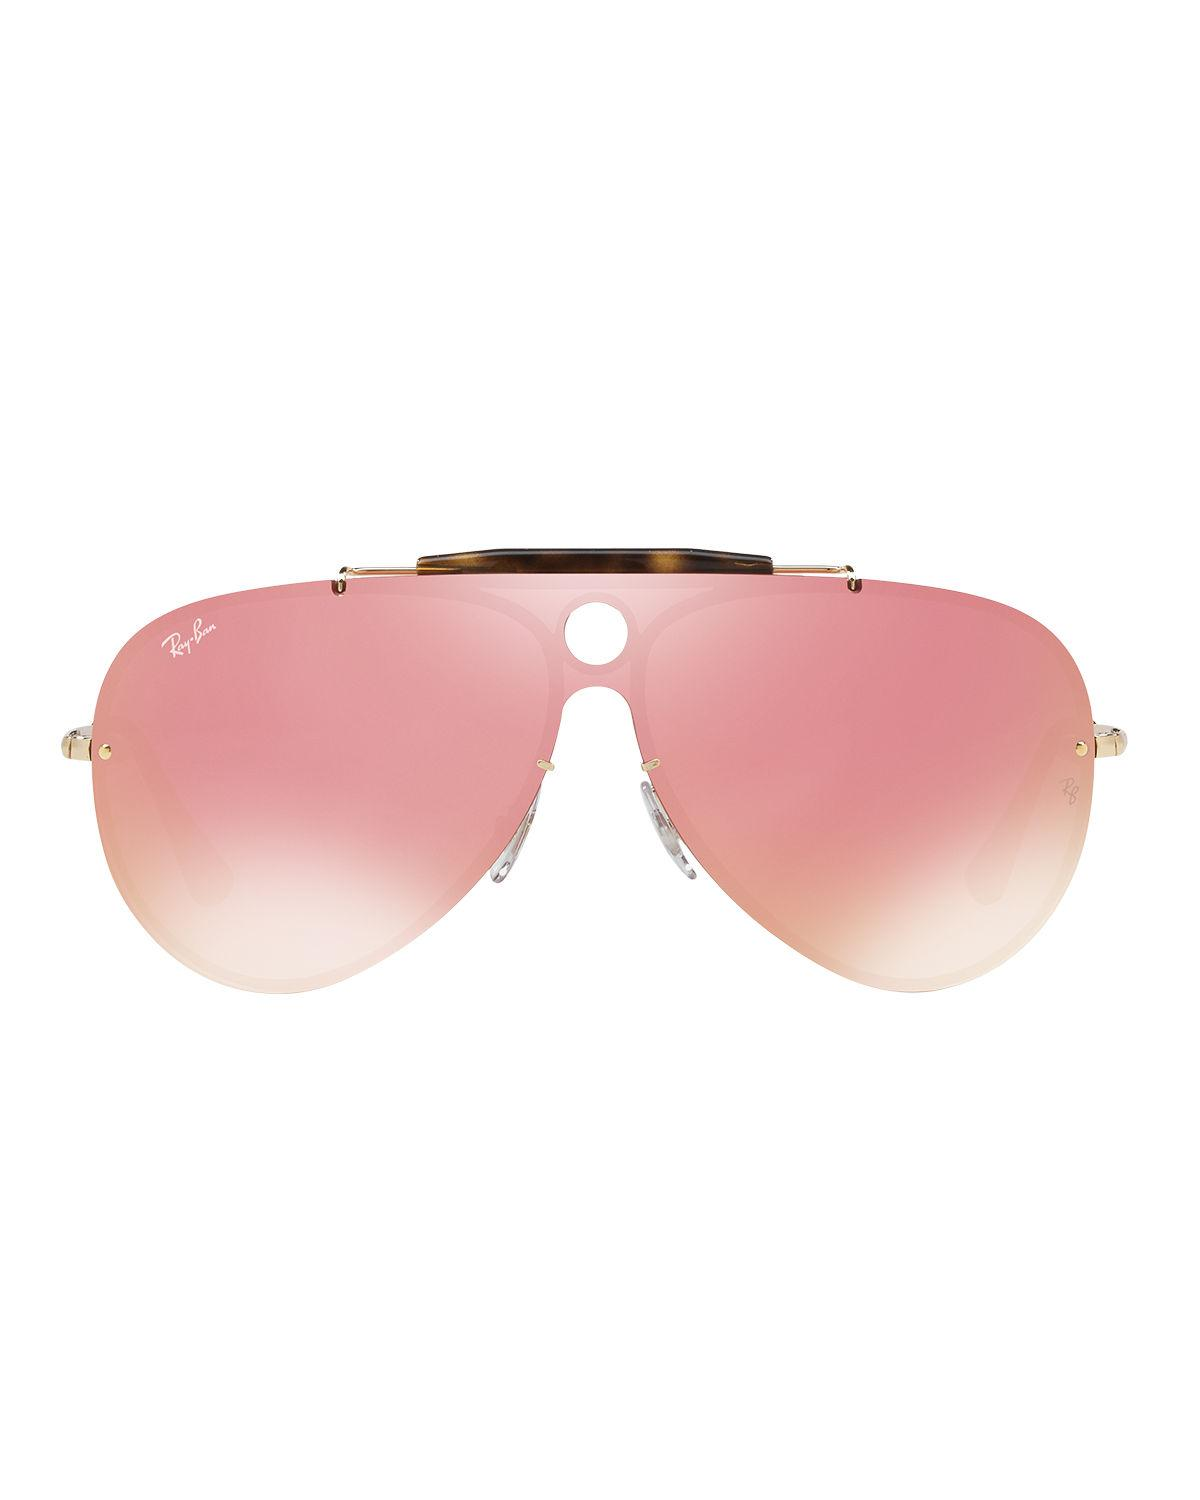 bcc29643a6b Lyst - Ray-Ban Blaze Shooter Flat Shield Sunglasses in Pink